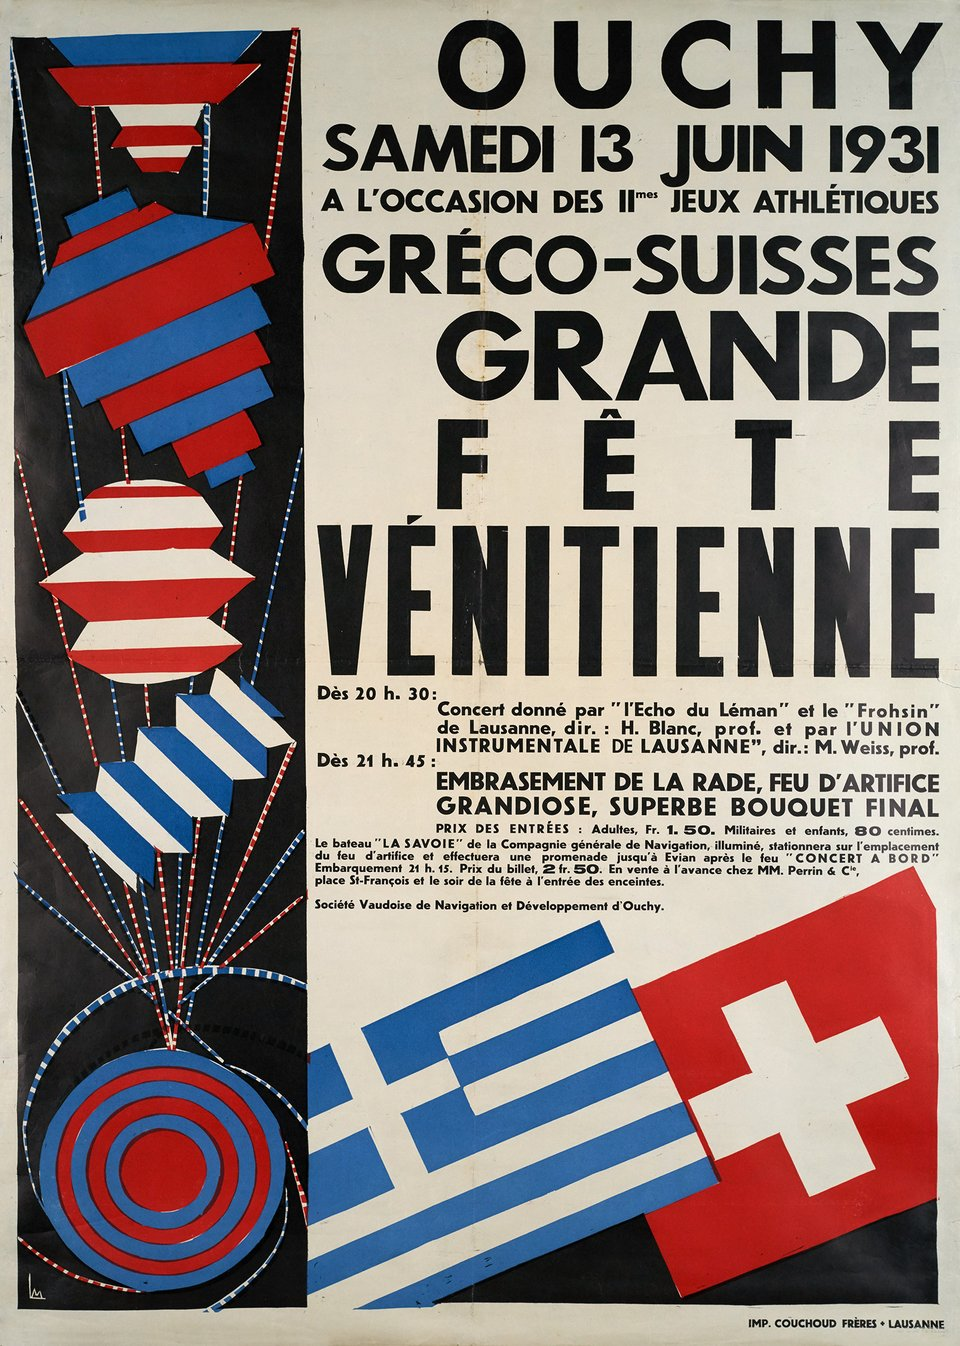 Grande Fête Vénitienne, Ouchy – Affiche ancienne –  MONOGRAMM – 1931